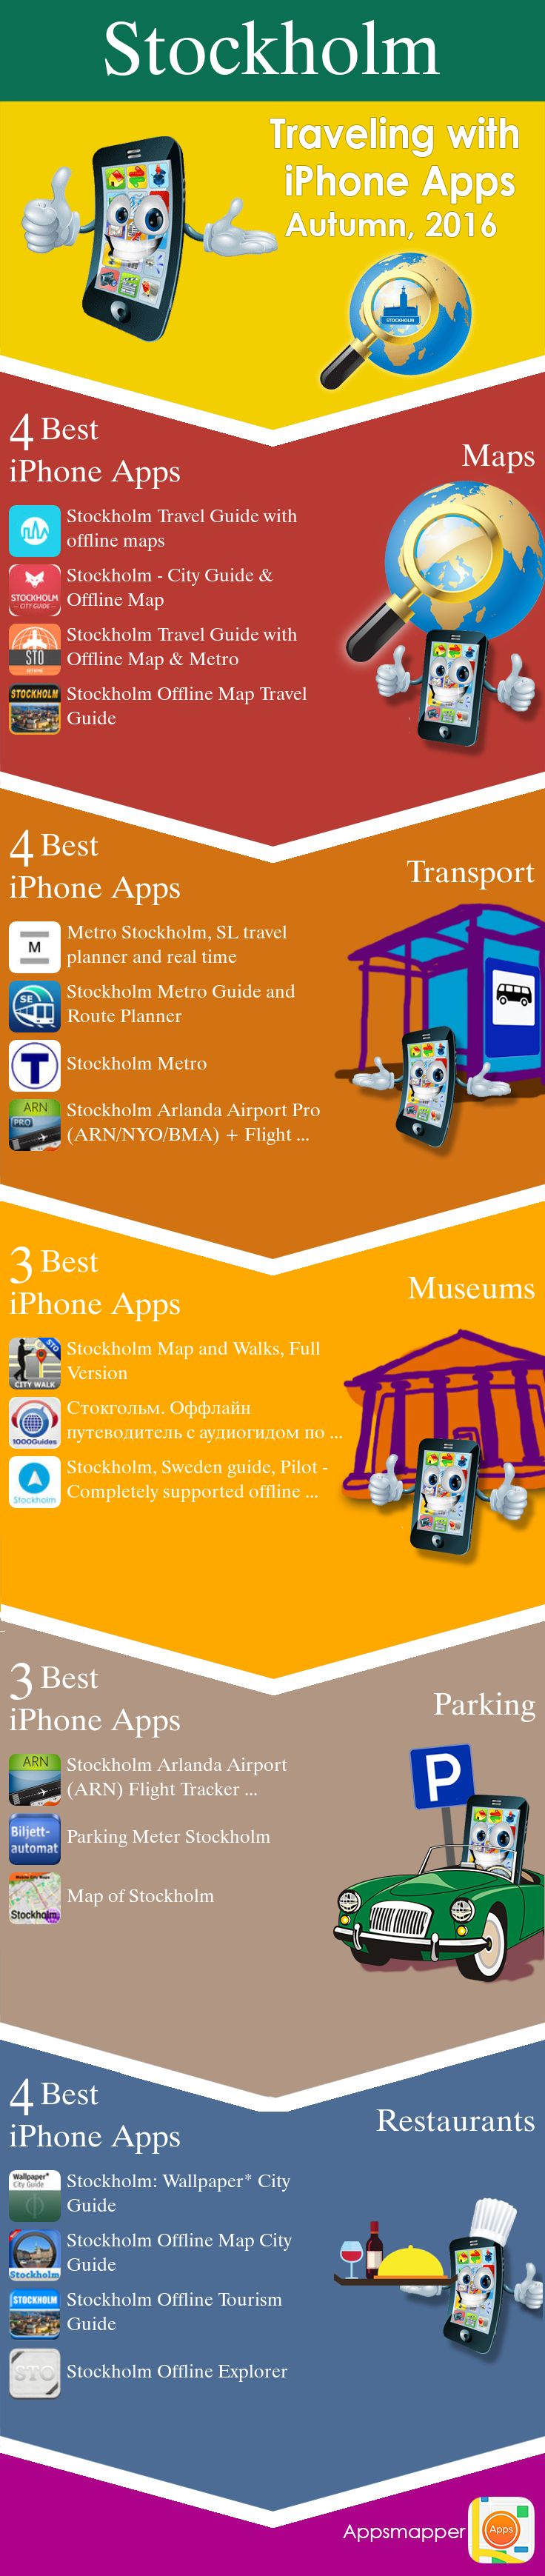 Stockholm iPhone apps: Travel Guides, Maps, Transportation, Biking, Museums, Parking, Sport and apps for Students.